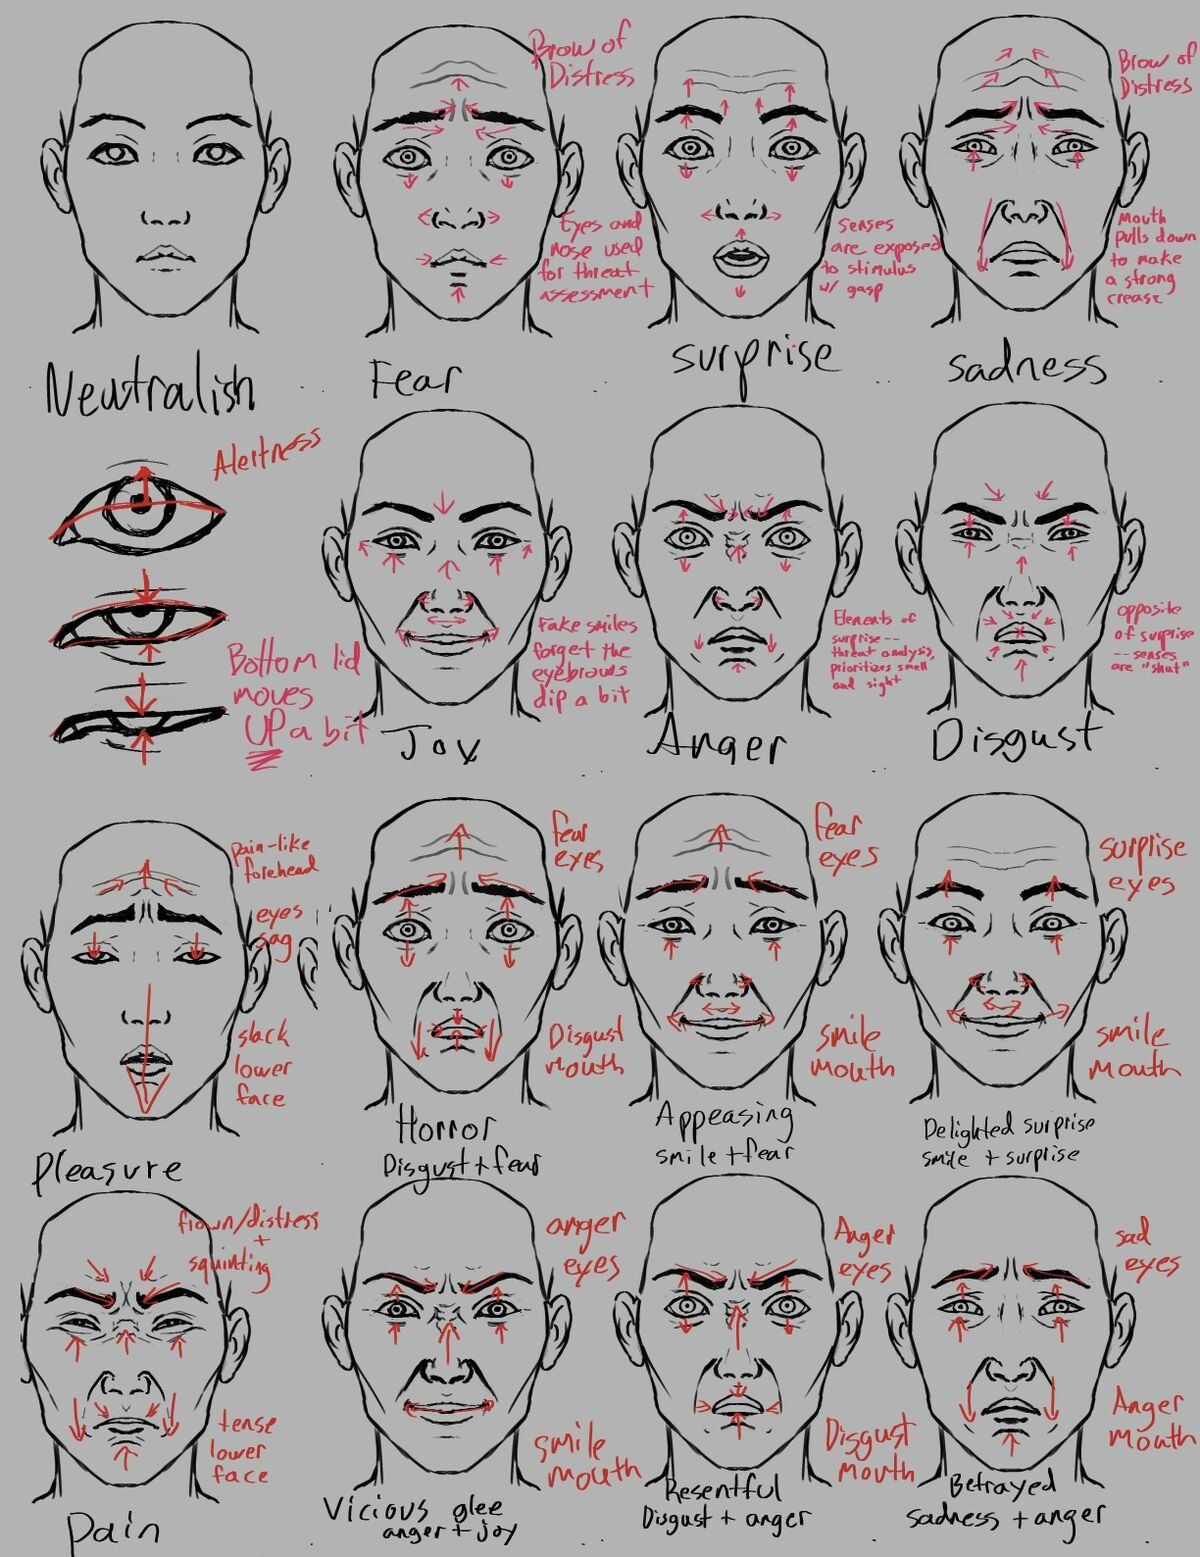 Reference Emotions And Facial Expression From Winter Pubdraw